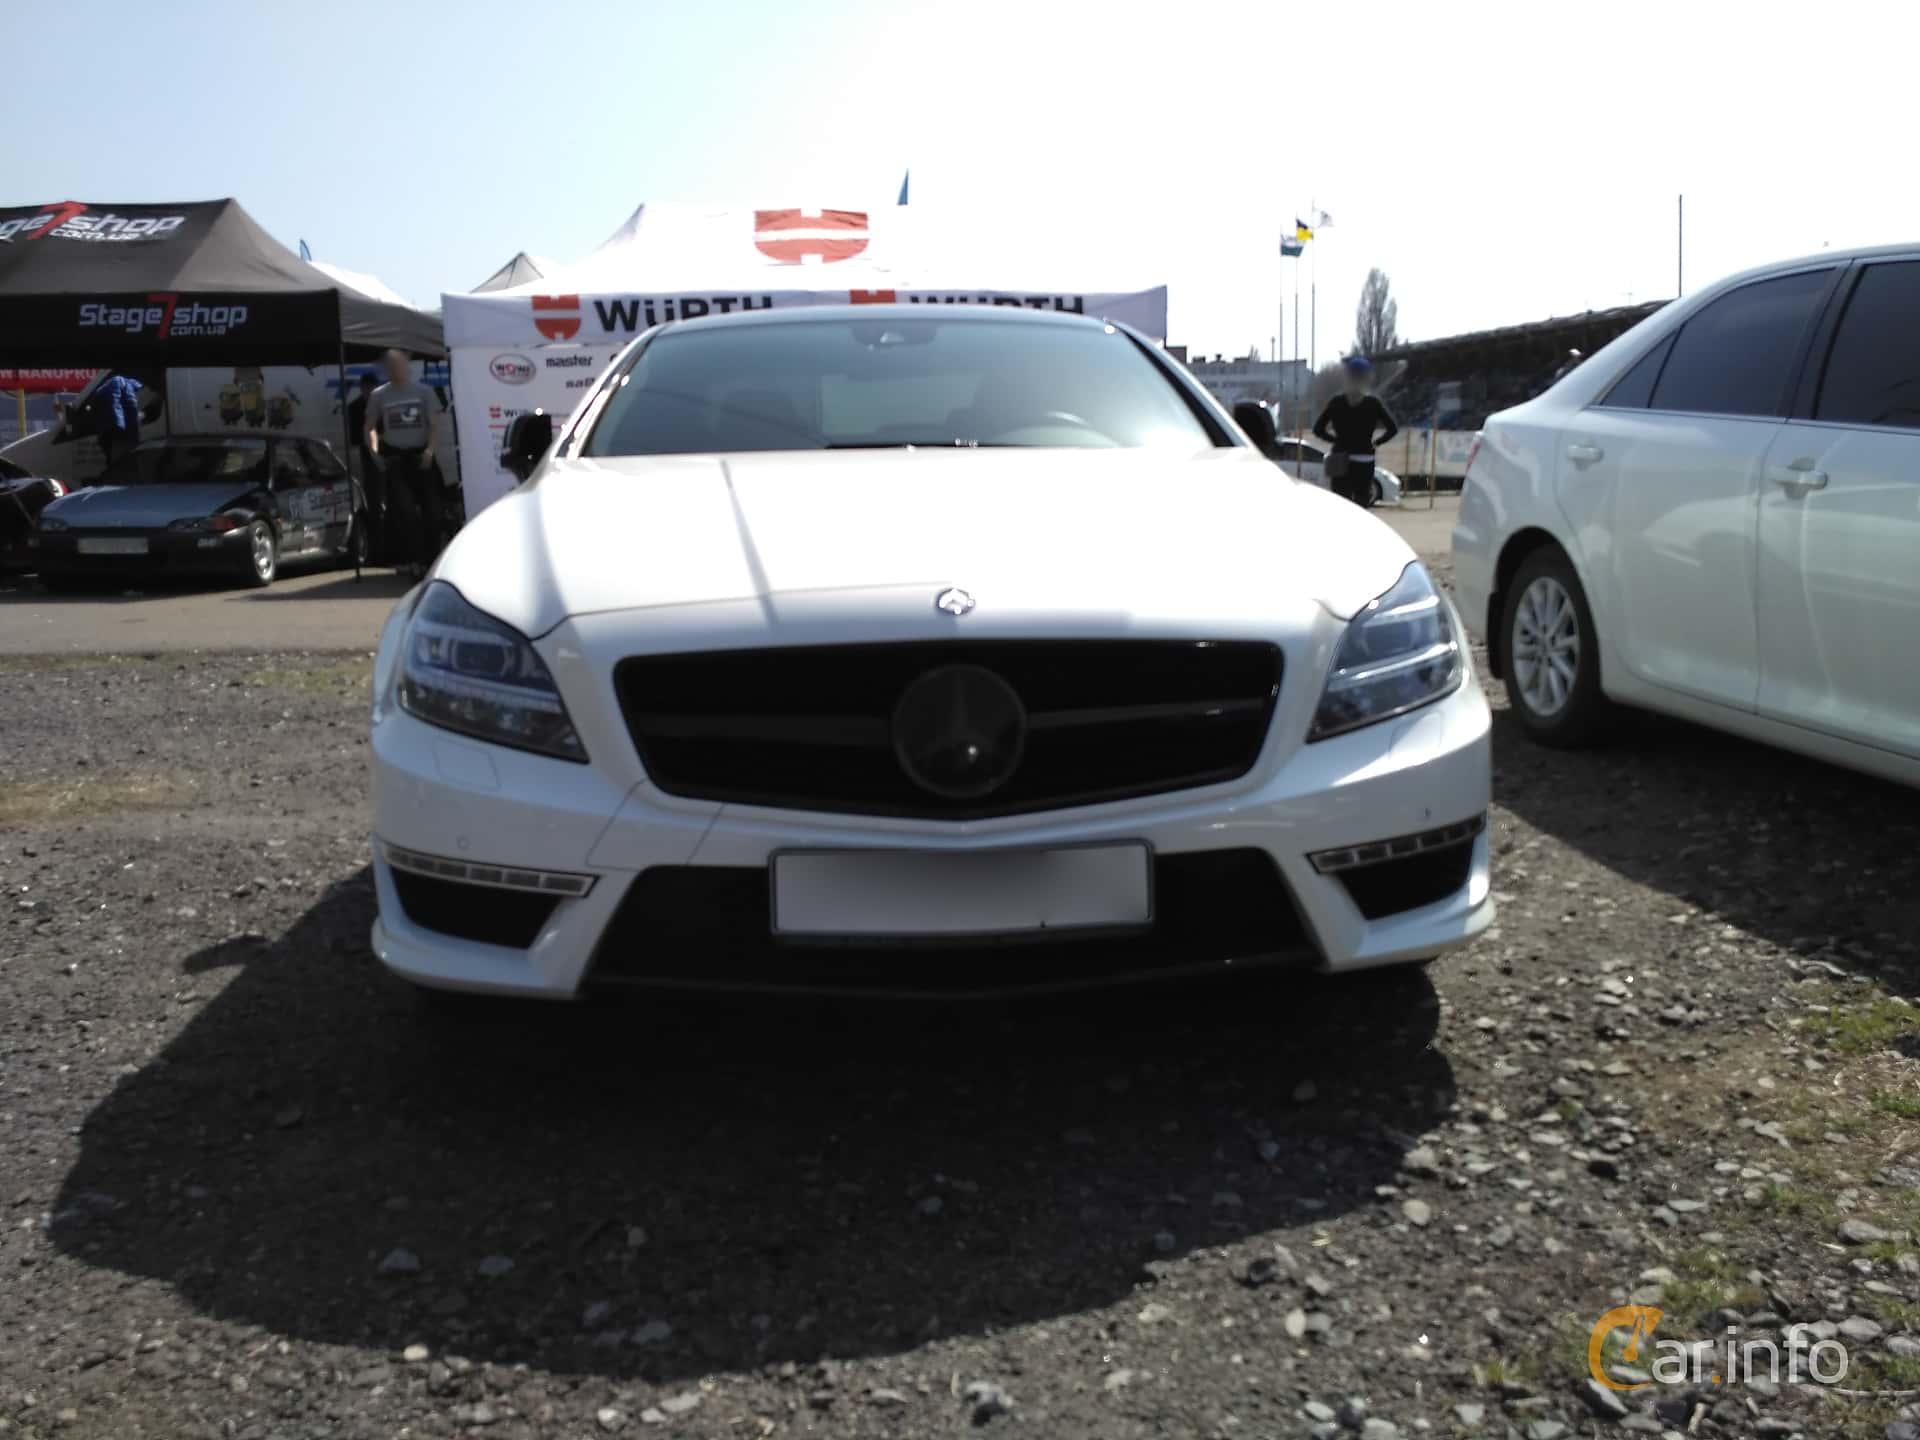 Fram av Mercedes-Benz CLS 63 AMG S 4MATIC 5.5 V8 4MATIC , 585ps, 2013 på Ltava Time Attack 1st Stage